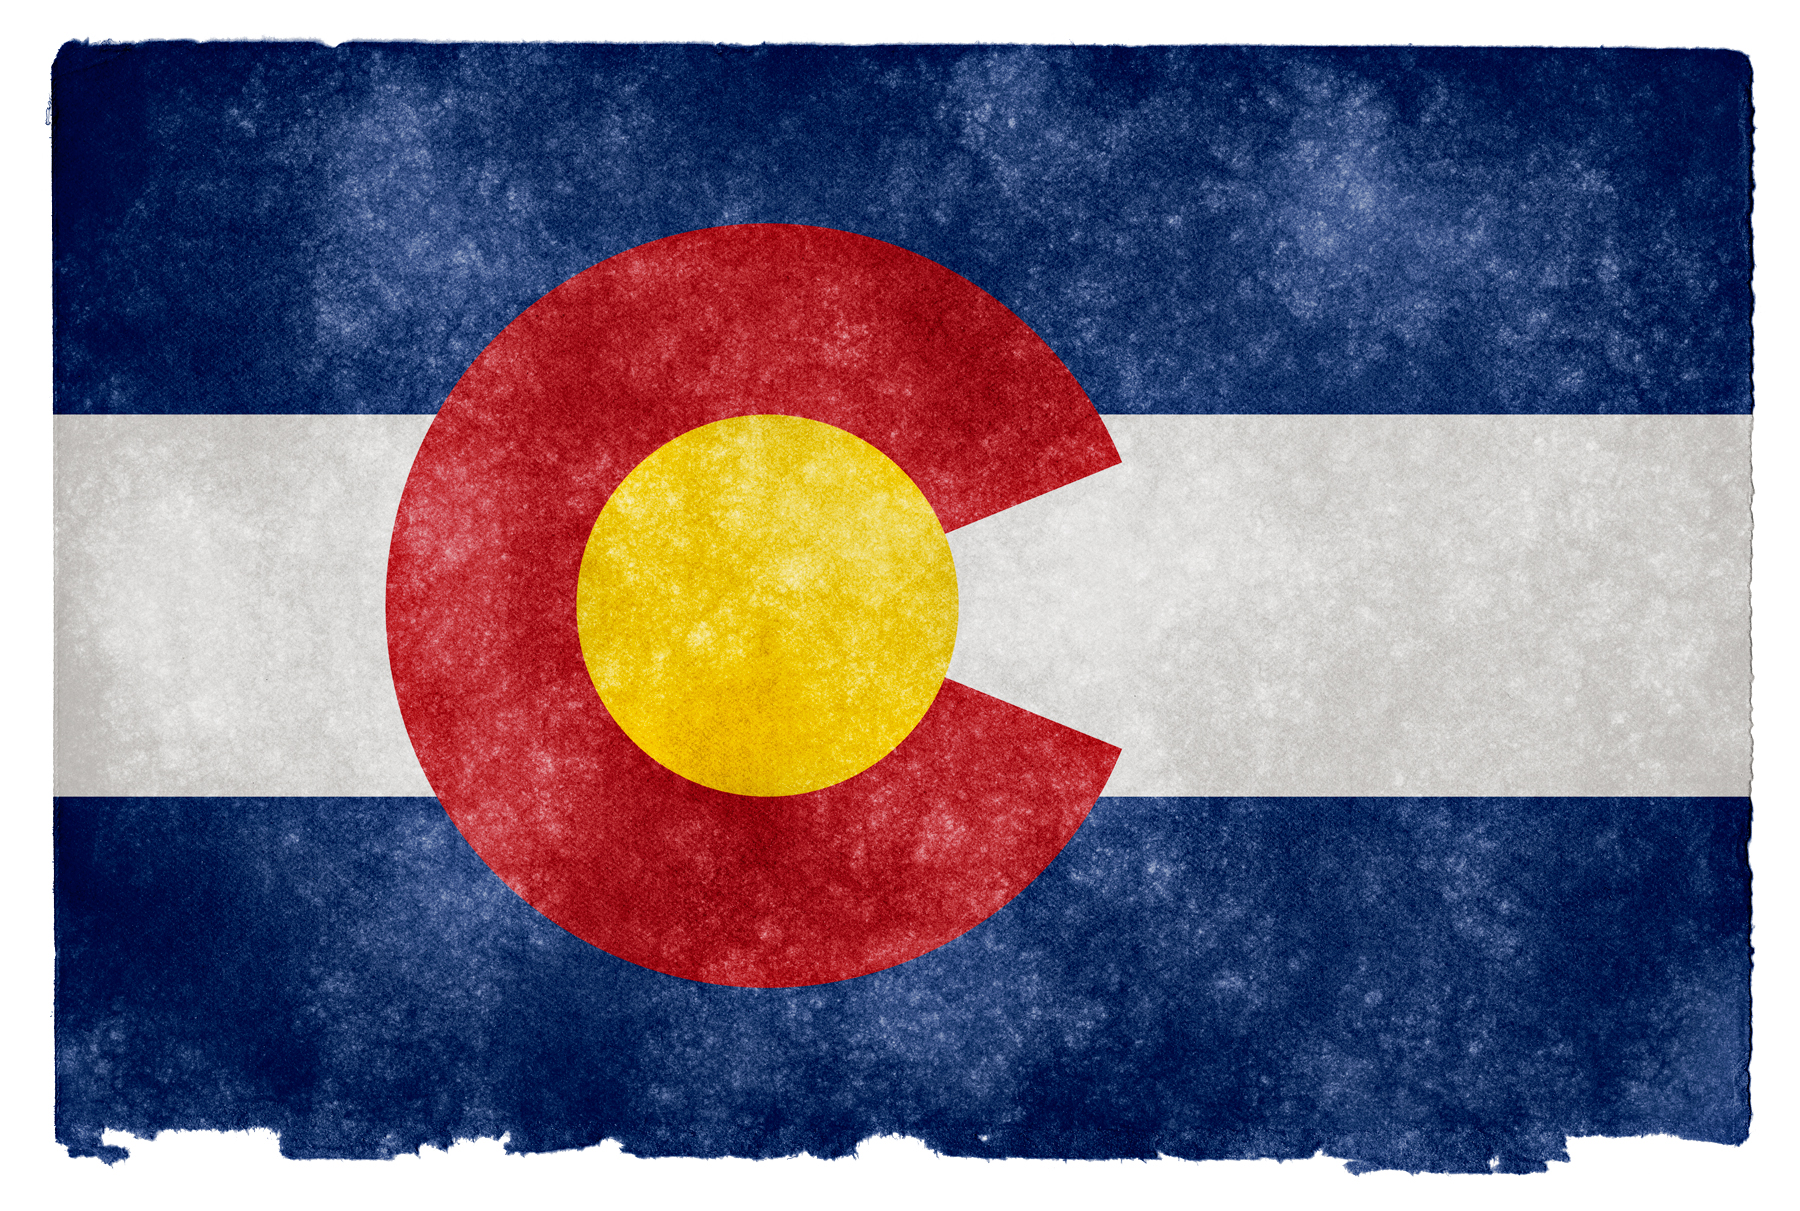 Colorado Grunge Flag HD Wallpaper